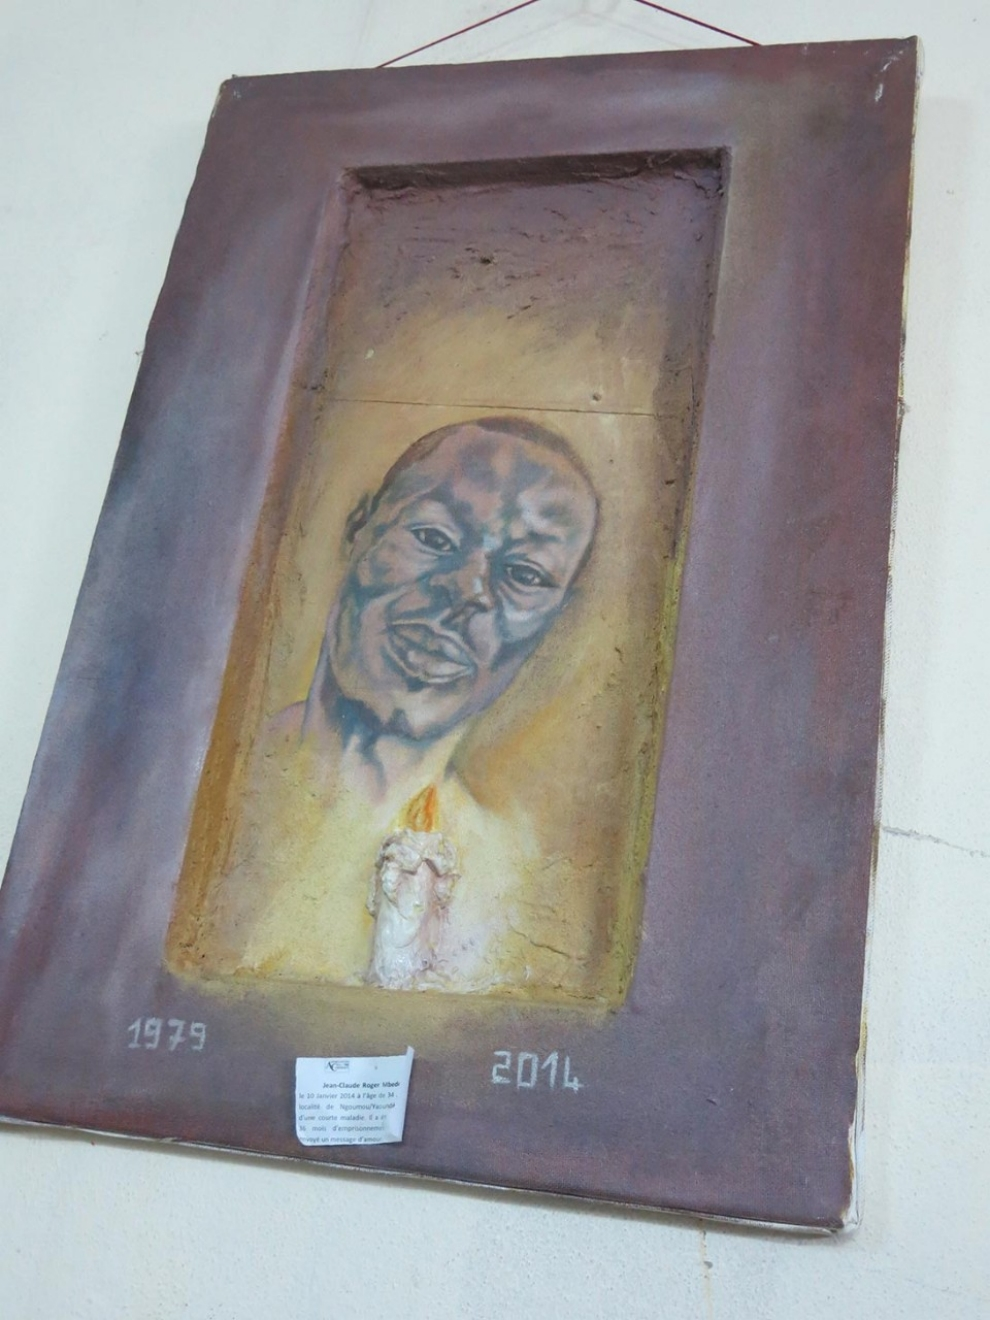 A painting in memory of Roger Mbede hangs in the office of a Cameroonian LGBT organization. (Robbie Corey-Boulet photo courtesy of Al Jazeera)